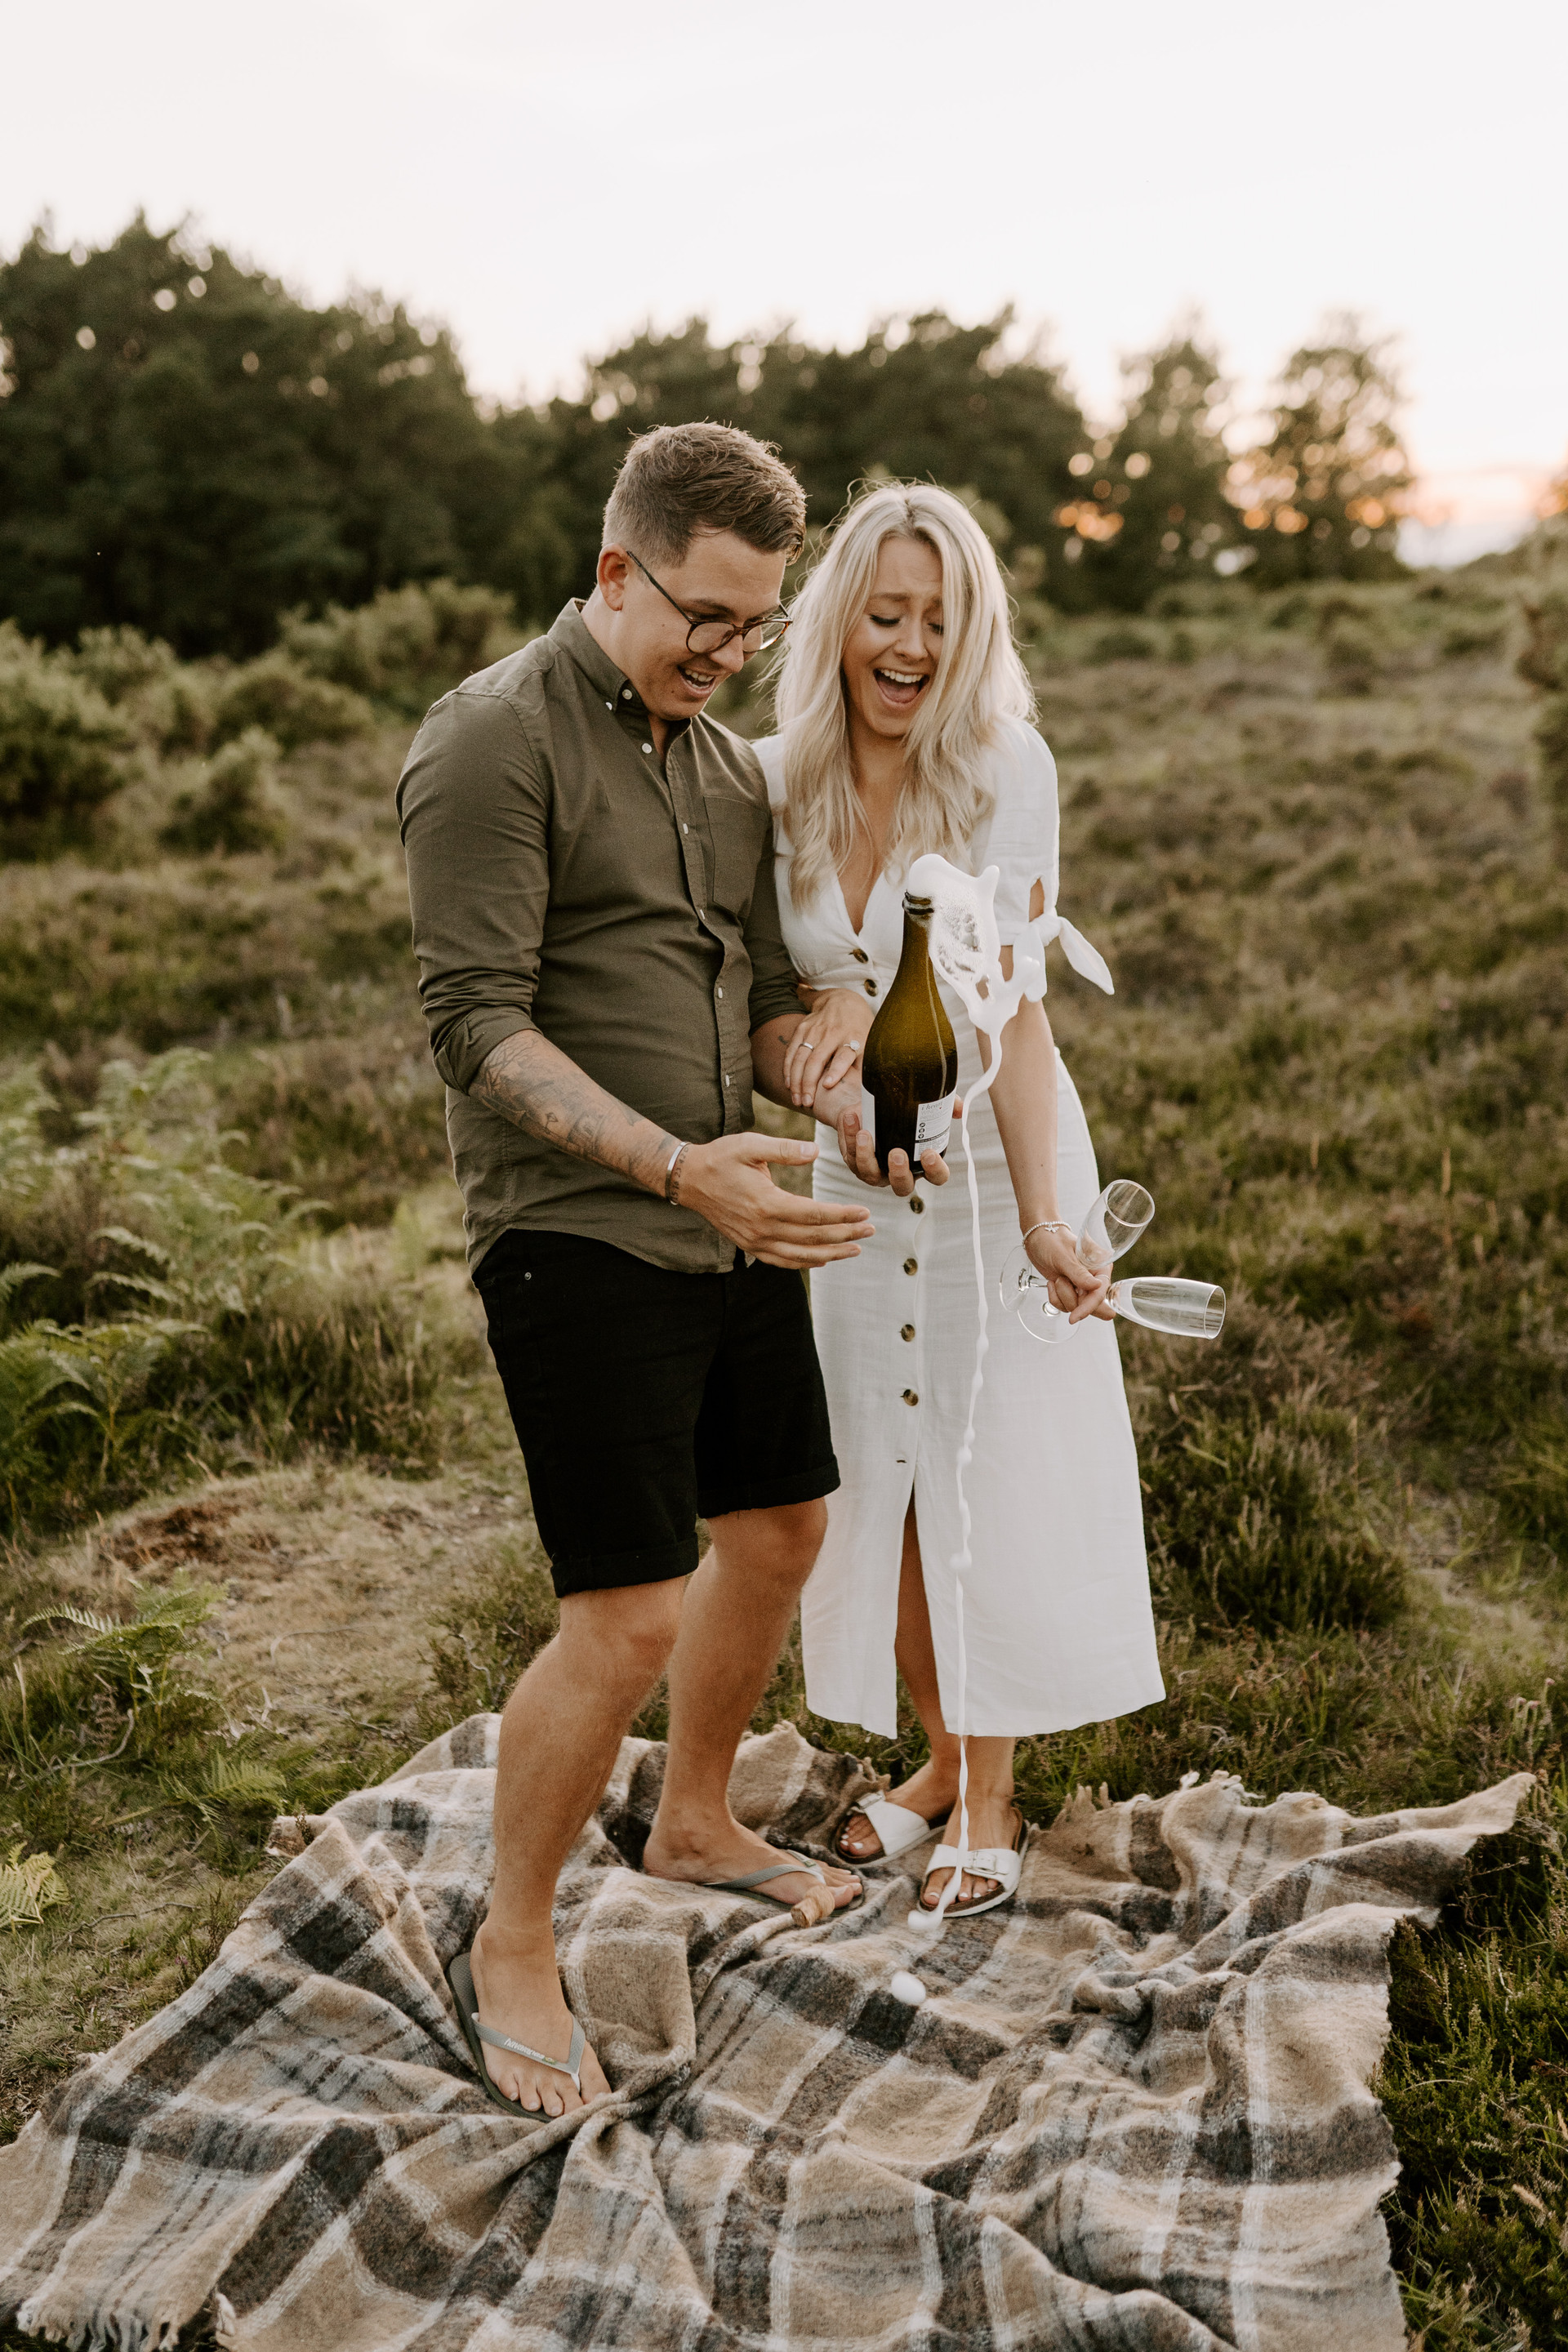 Sian & Mike | Couple Session-208.jpg